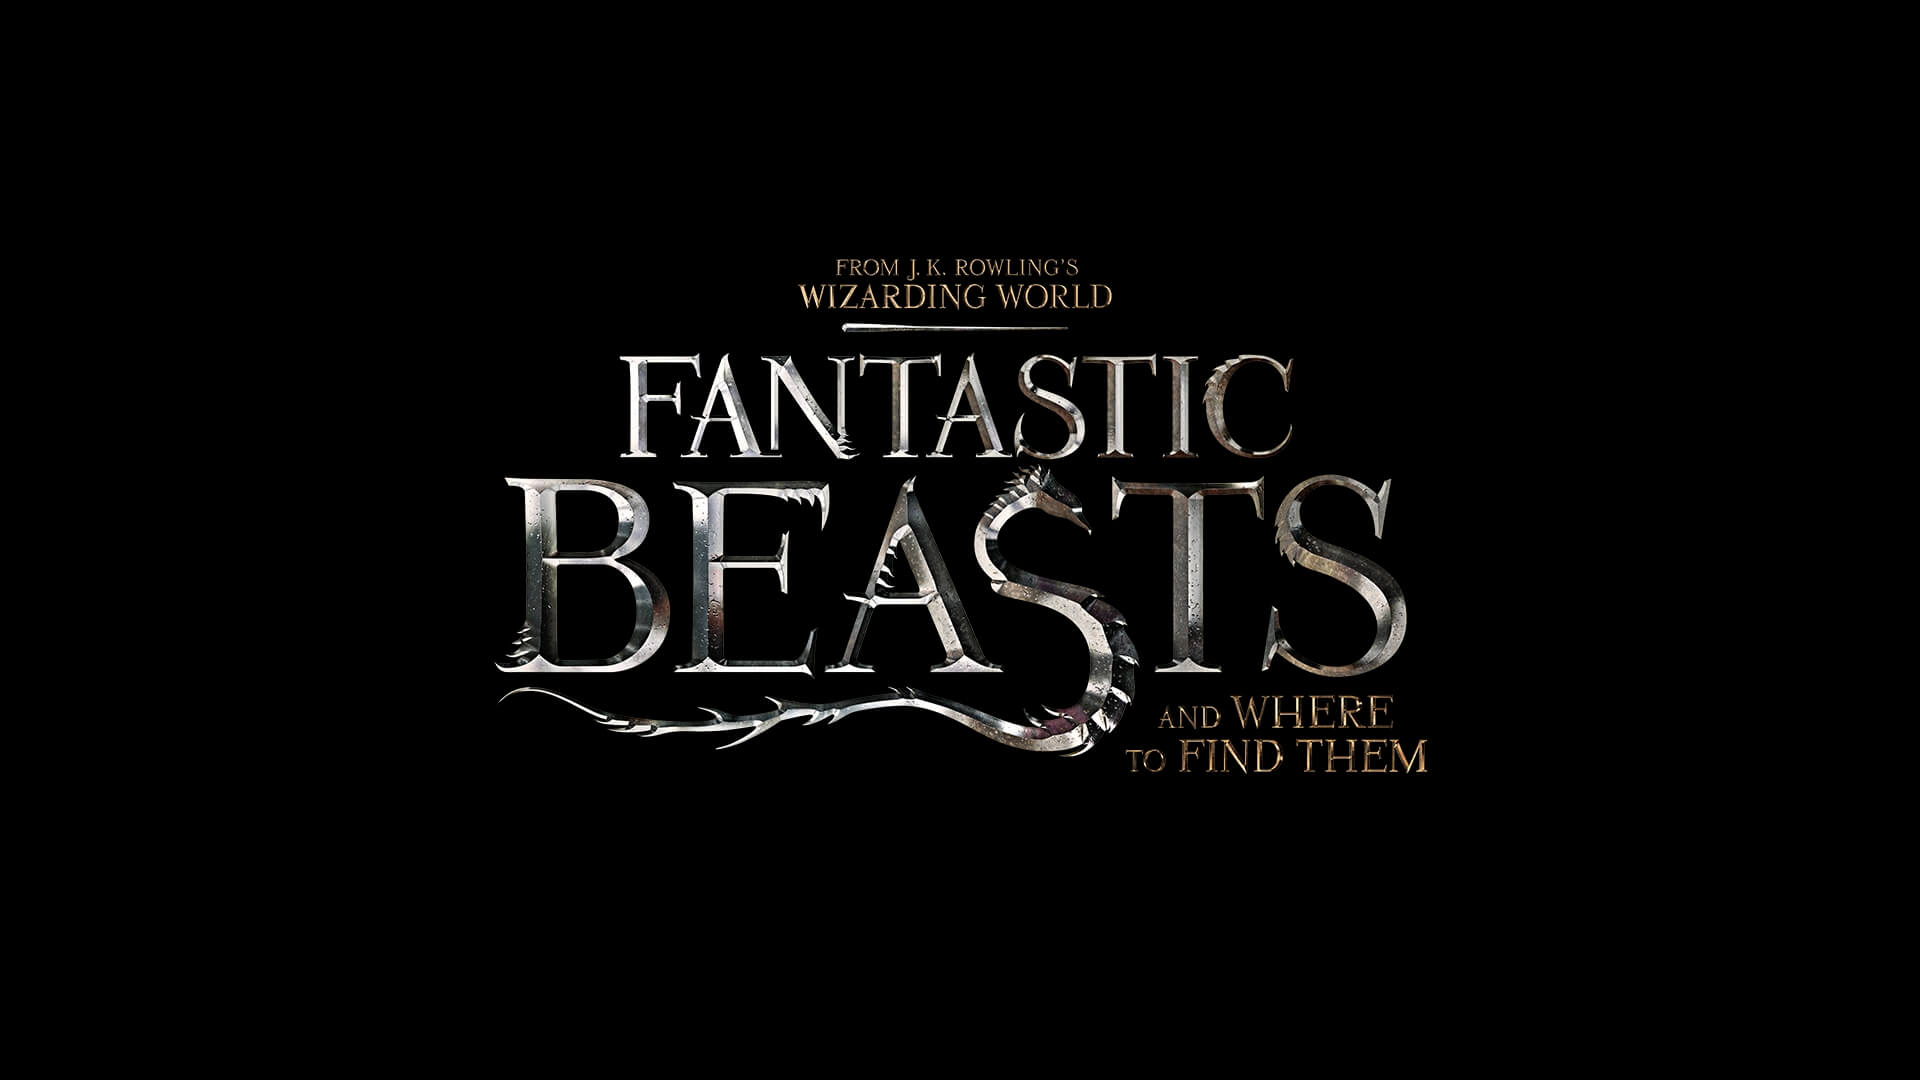 Fantastic Beasts and Where to Find Them - First Trailer